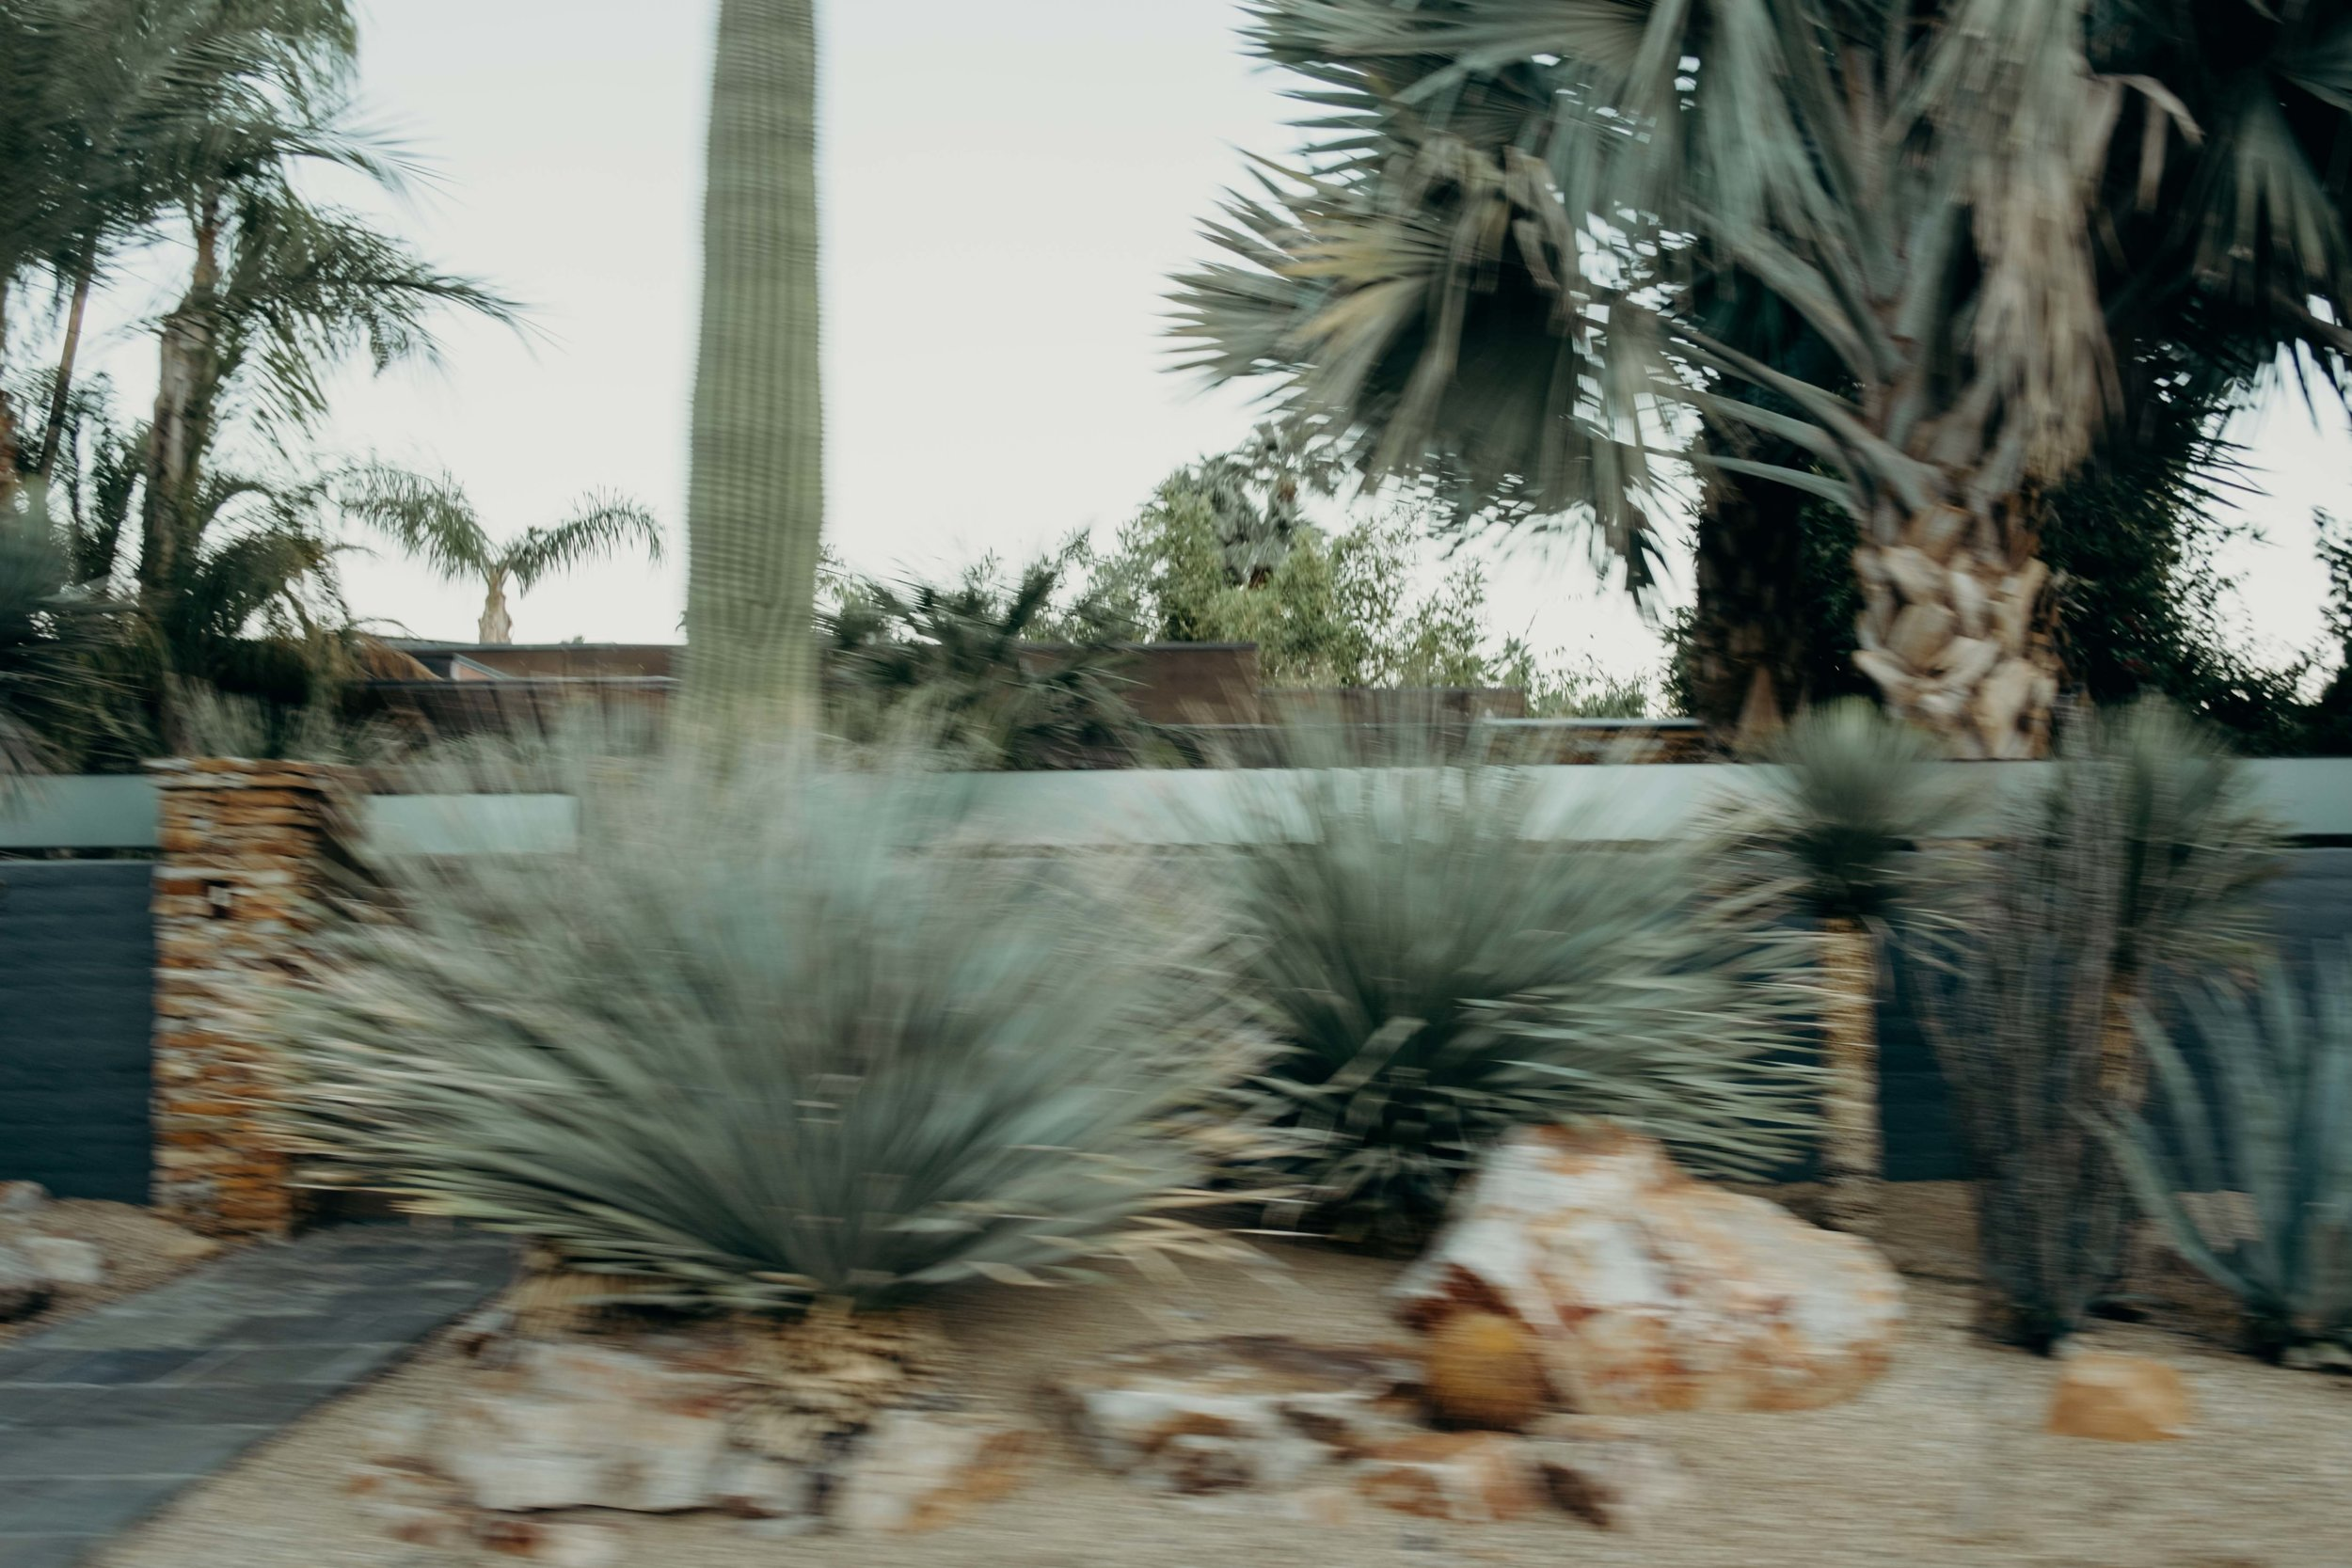 20171005_Palm Springs Travel Guide_45.jpg